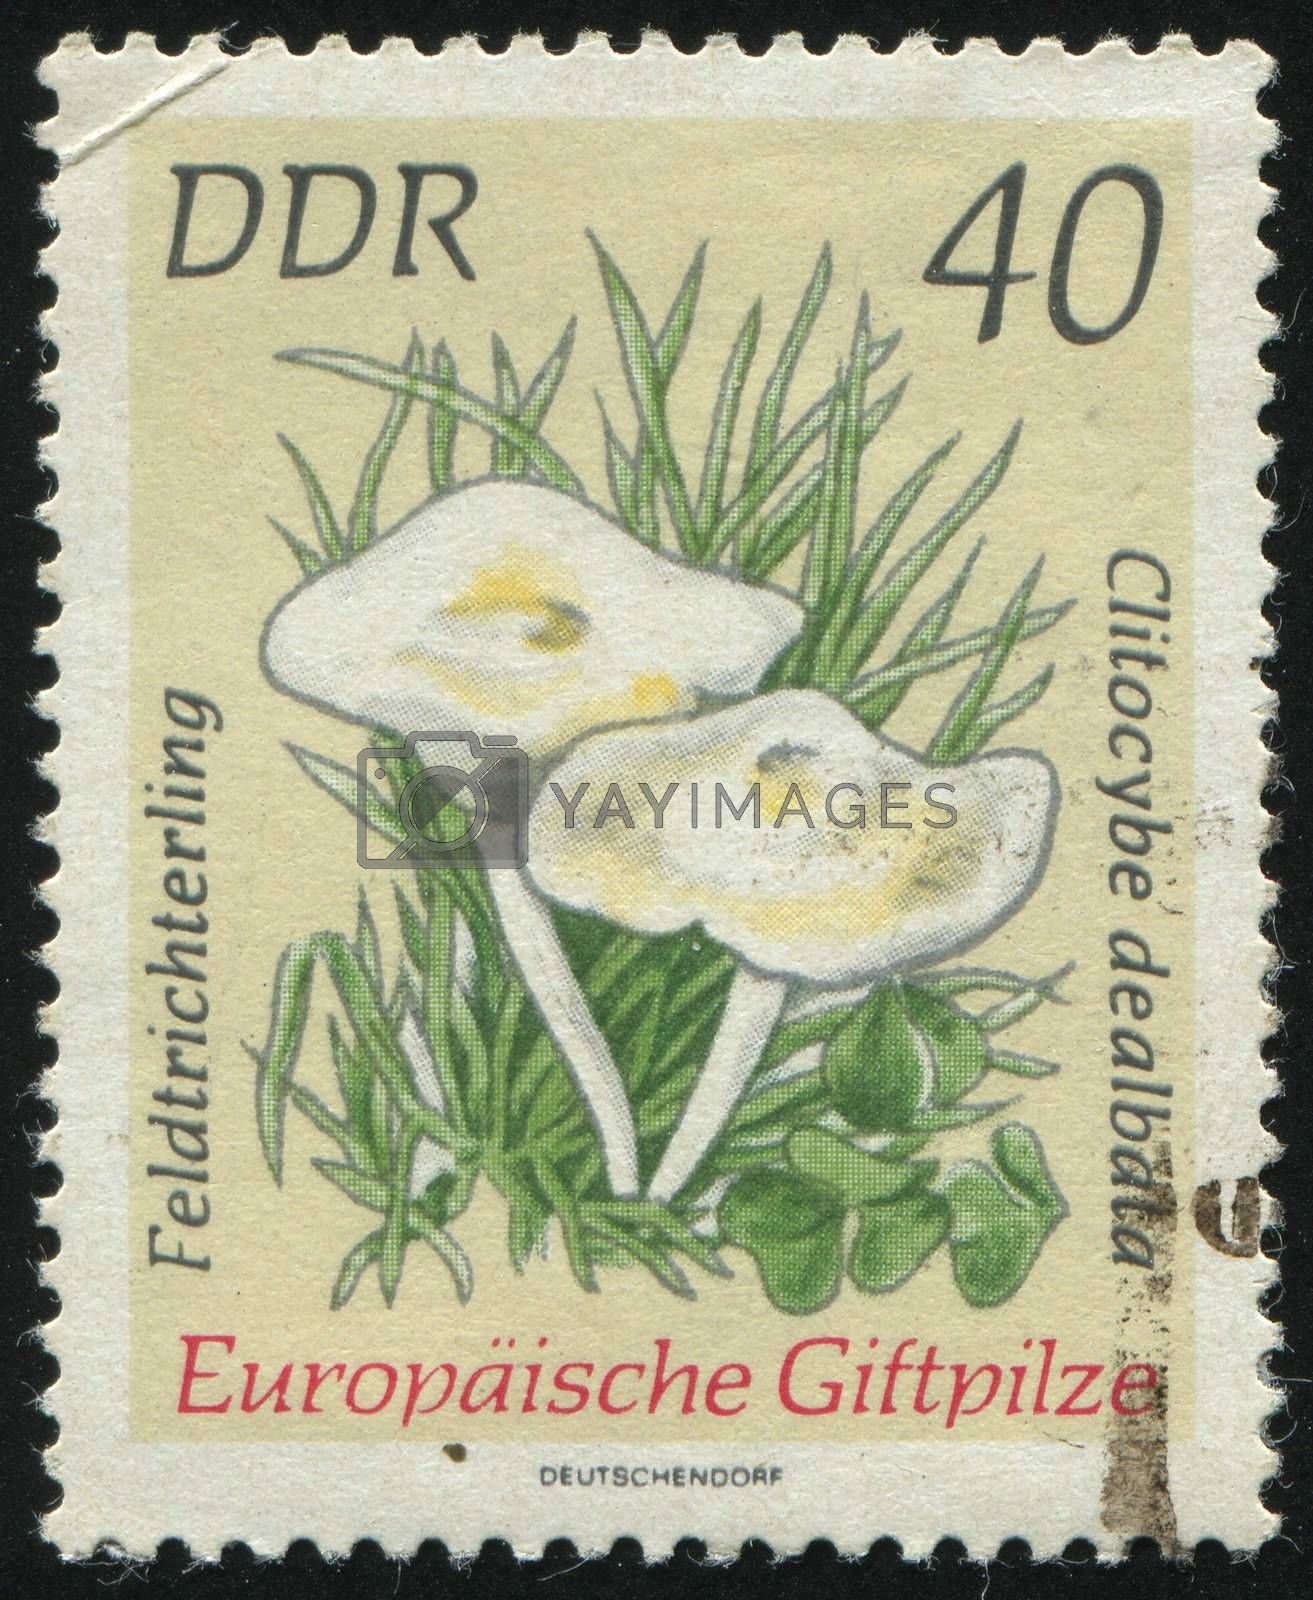 GERMANY- CIRCA 1974: stamp printed by Germany, shows Clitocybe dealbata, circa 1974.